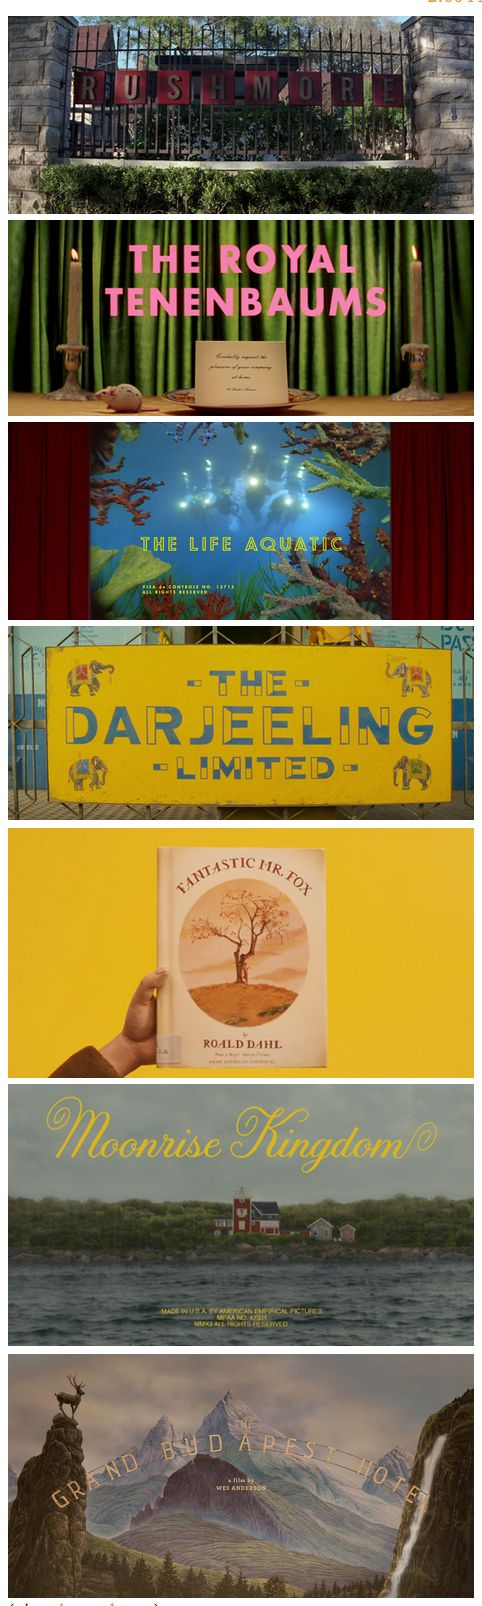 Wes Anderson Title Cards